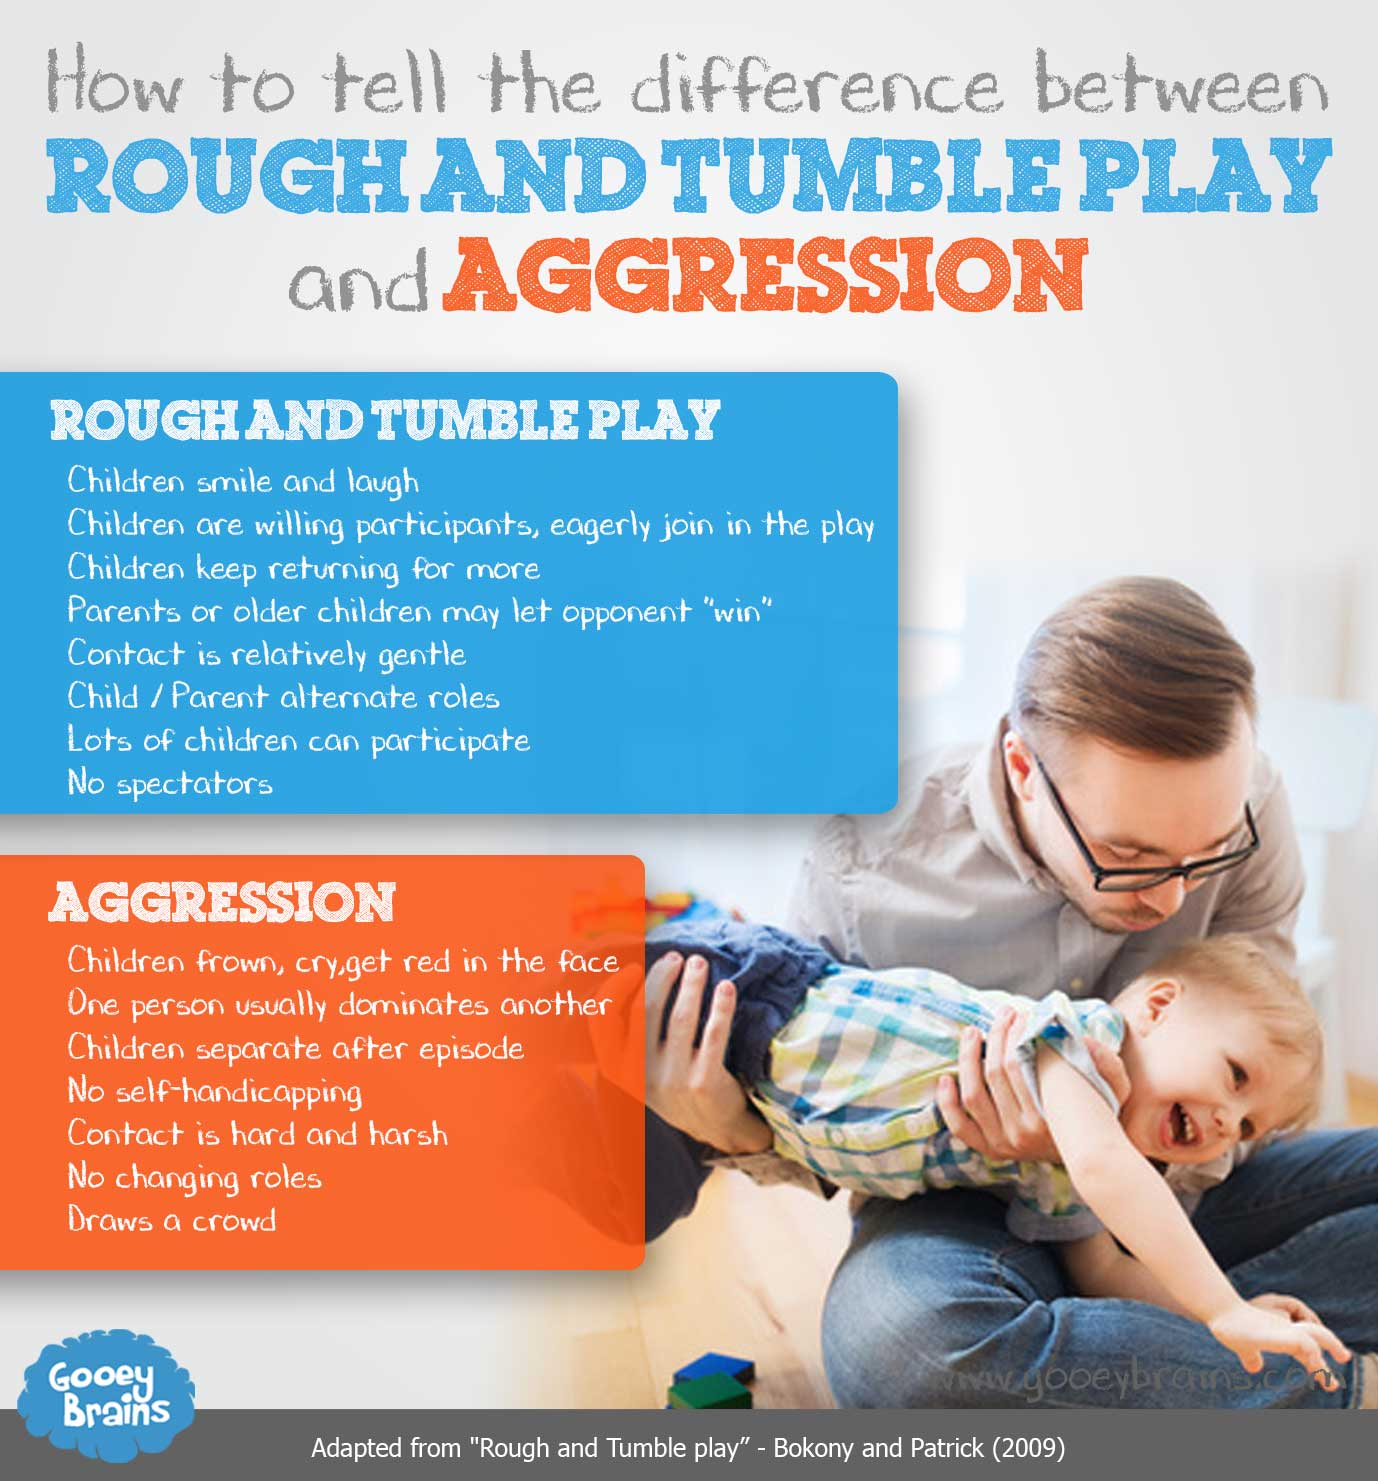 how to tell the difference between rough and tumble play and aggression